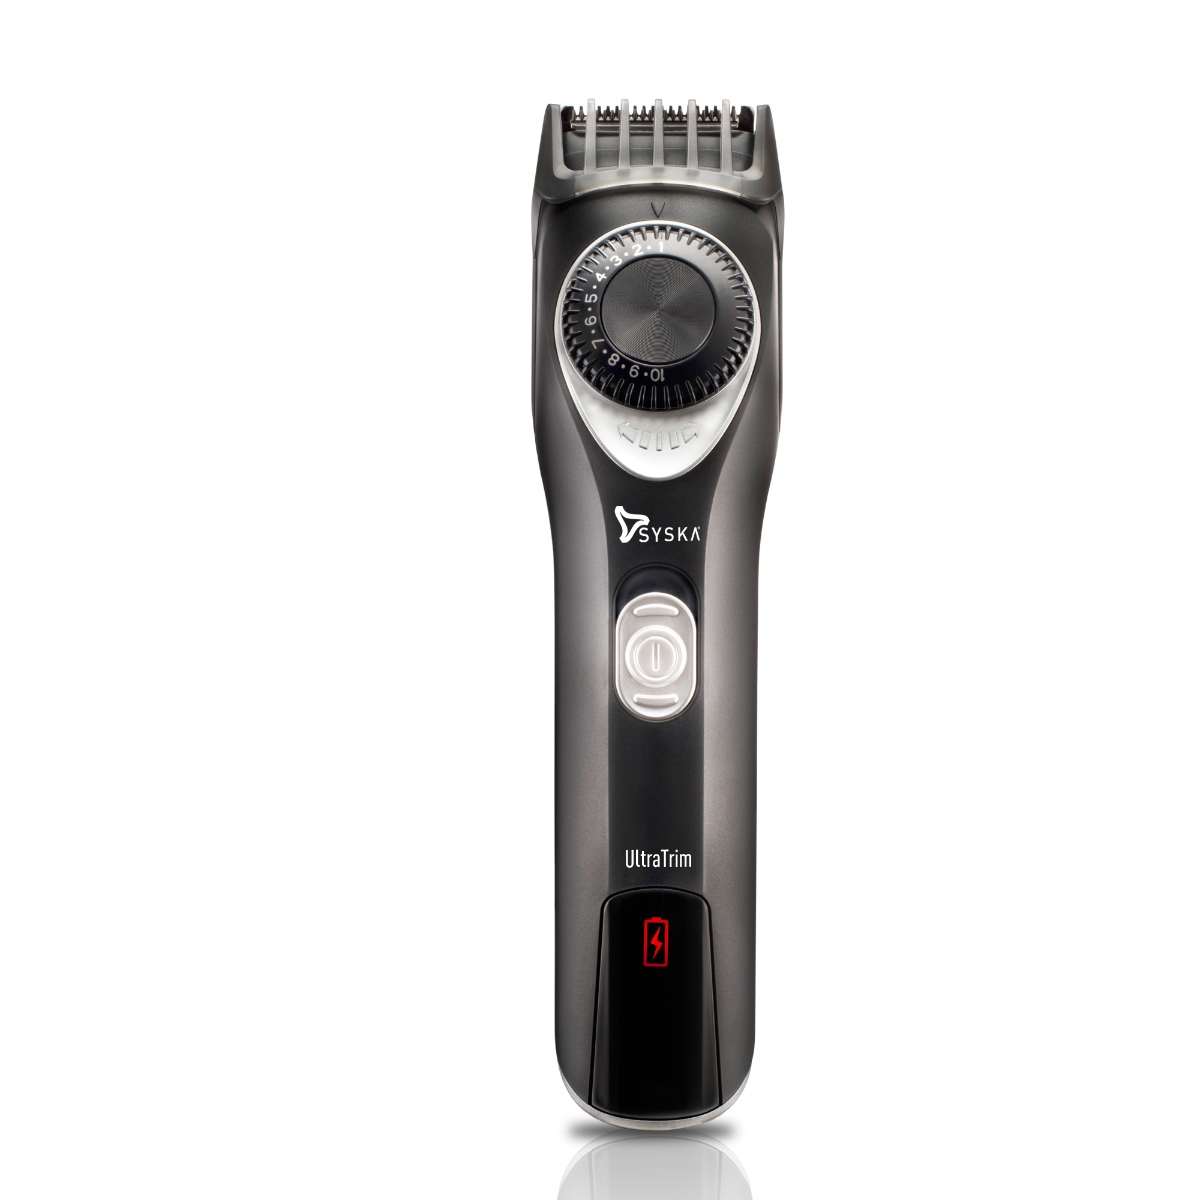 Syska HT750 UltraTrim Cordless Trimmer for Men